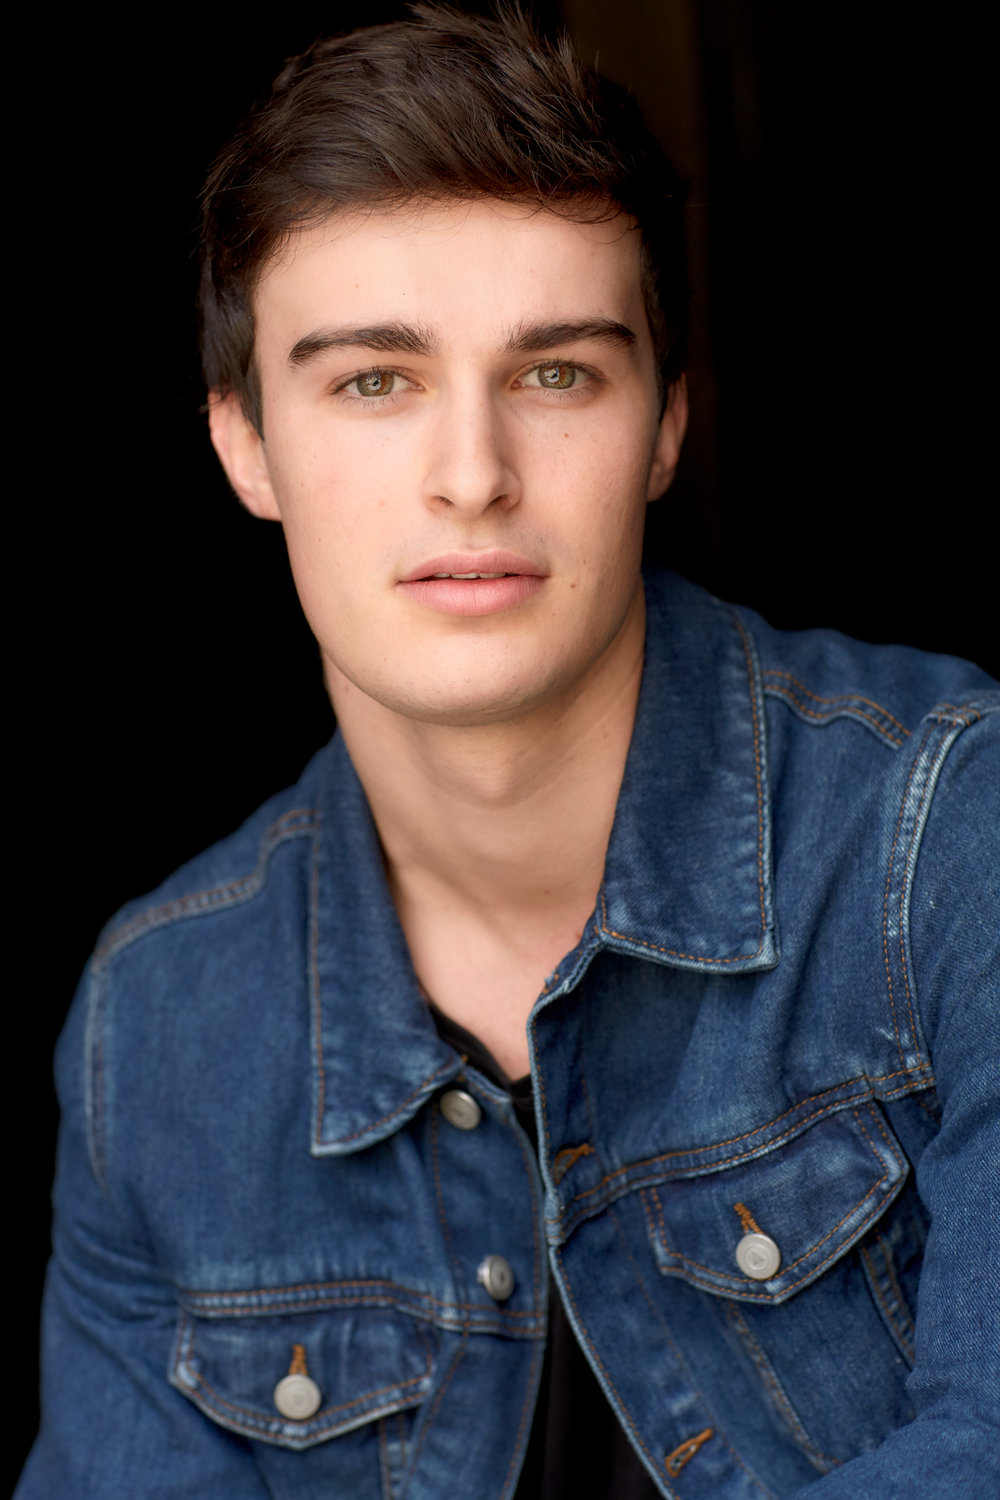 Nick Prokop Sydney Headshot Photographer.jpg